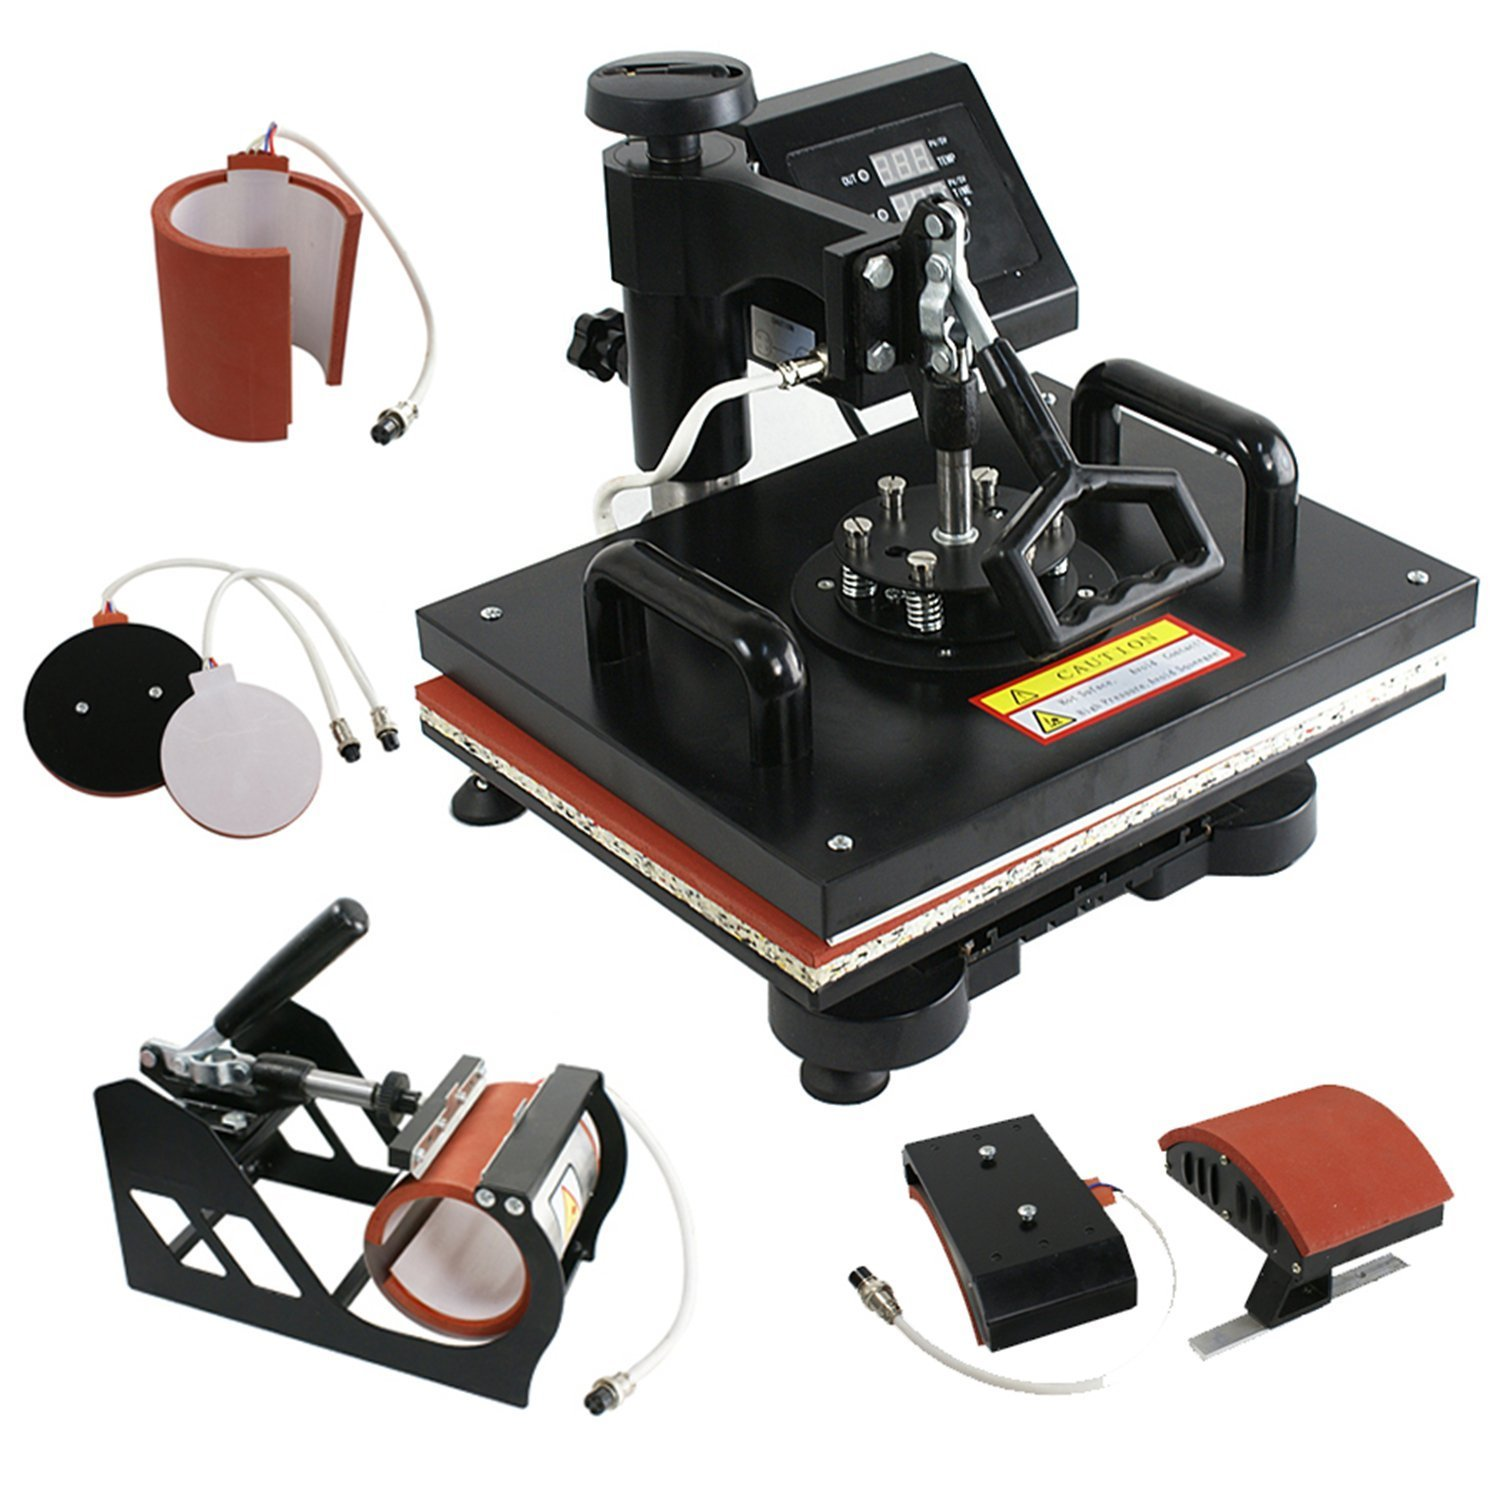 shareprofit multi function heat press